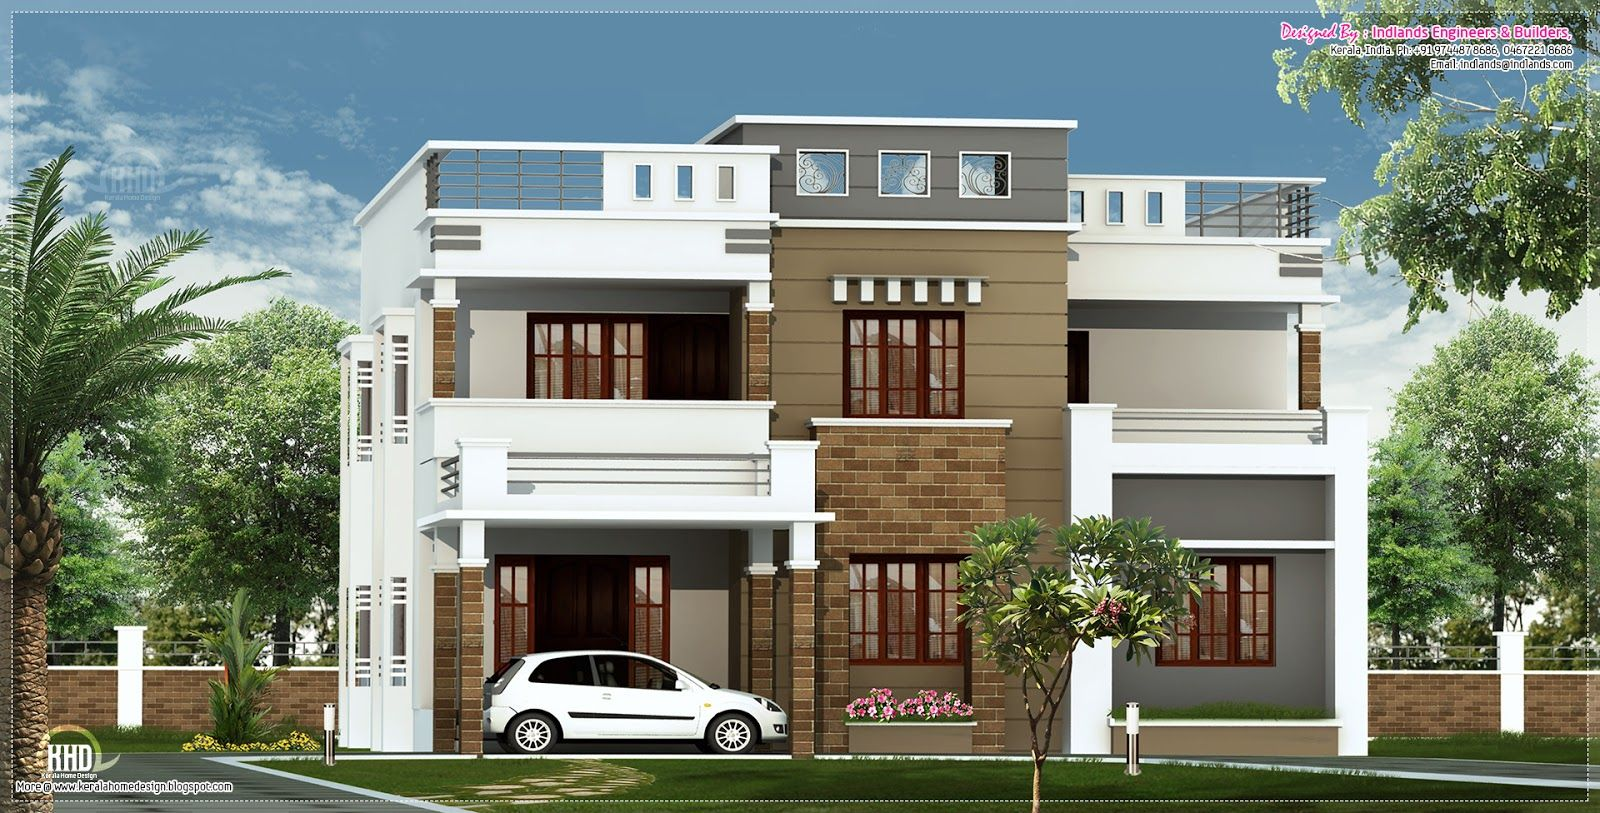 4 bedroom house with roof terrace plans google search Home builders designs